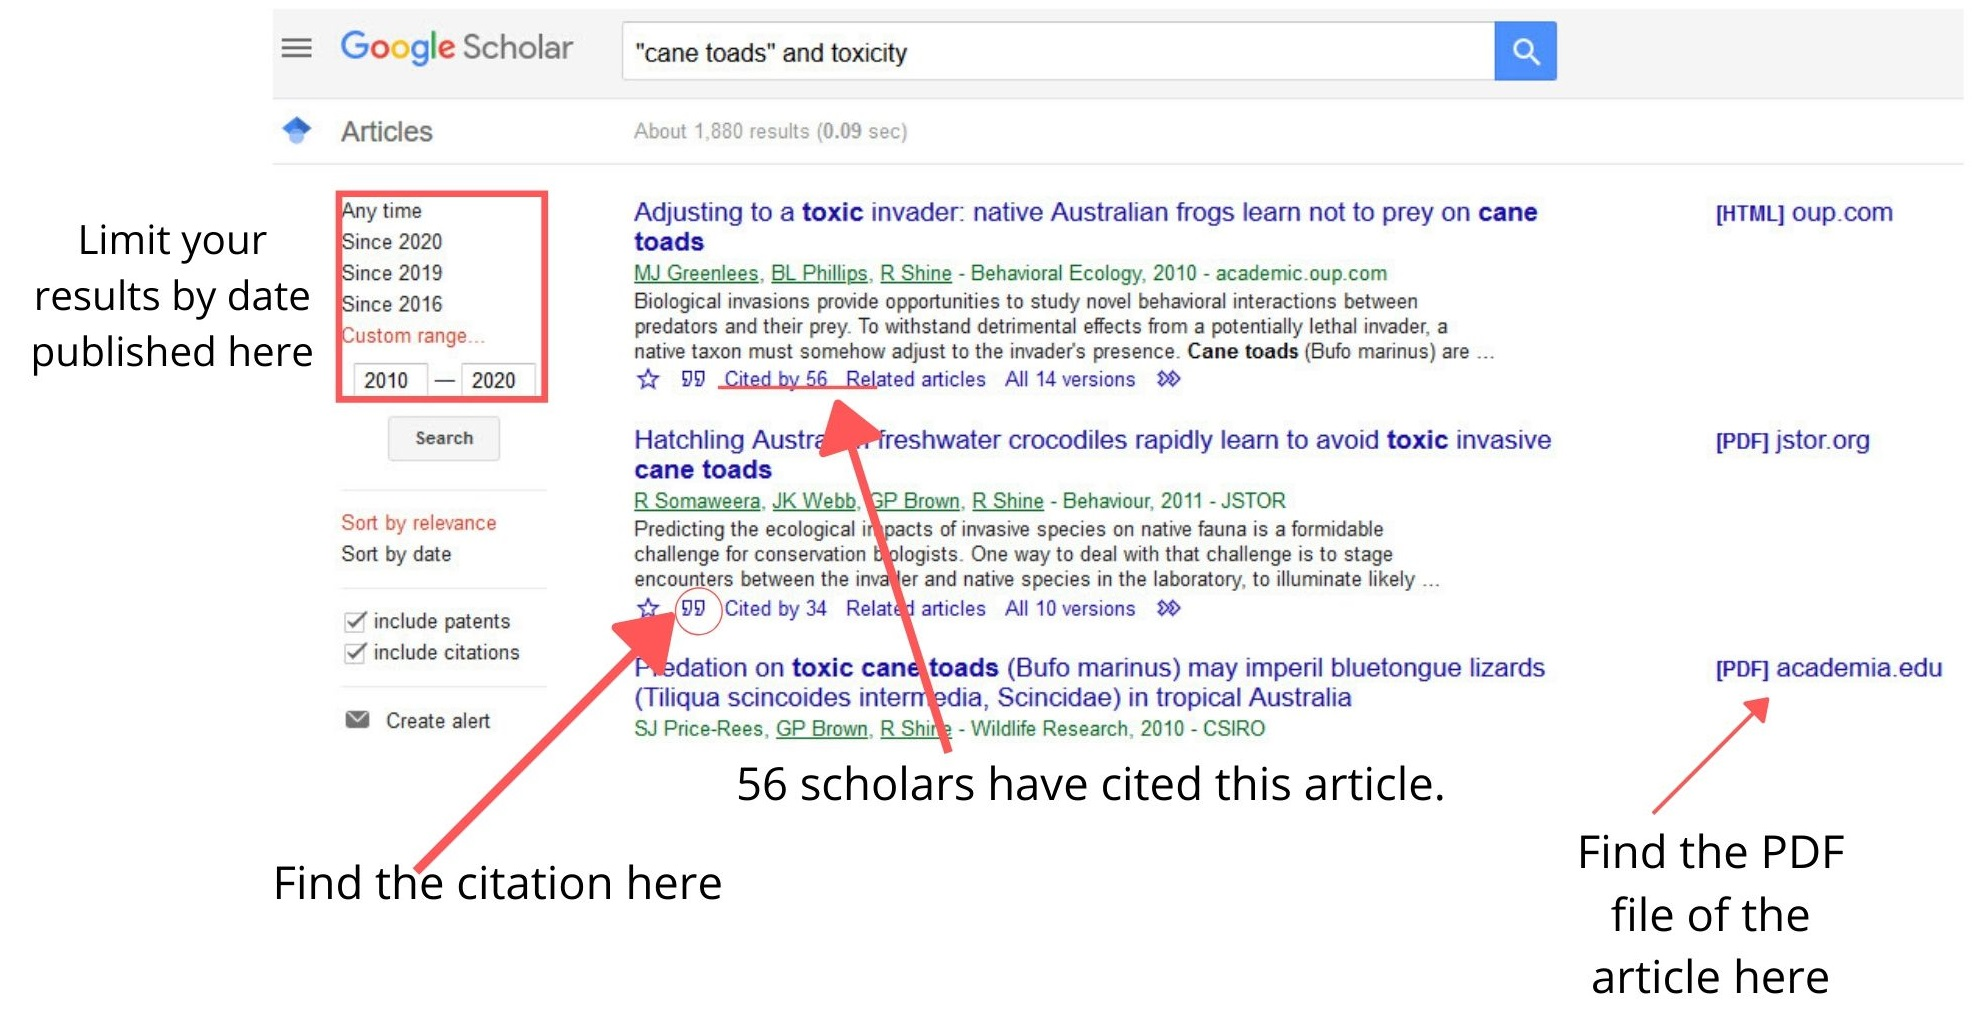 Google Scholar allows you to limit by date published. It also gives you the citation for the article and how many times other scholars have cited the article. Make sure to look for the PDF file for the article itself.